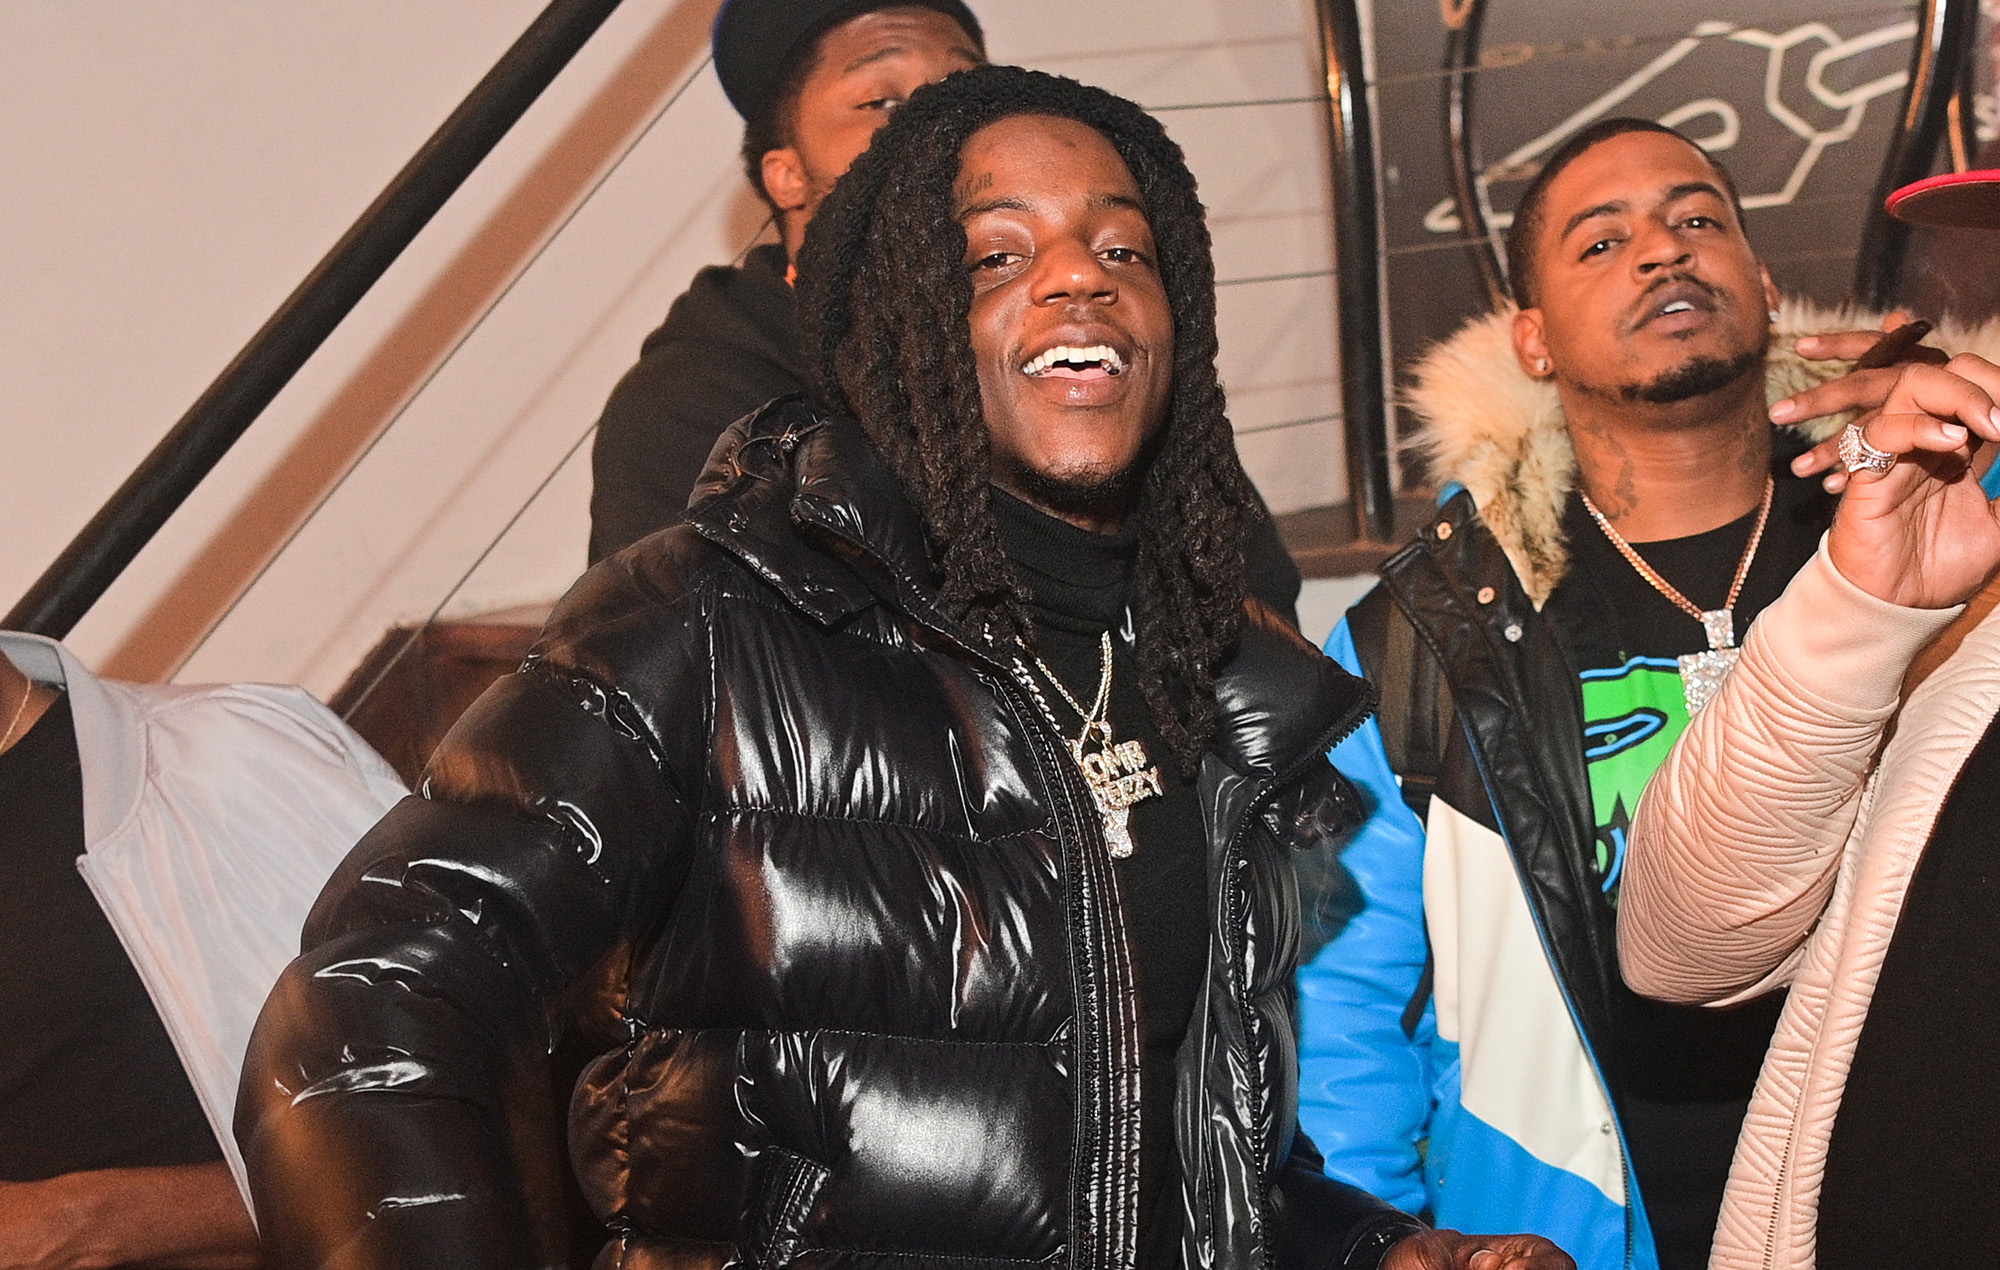 Rapper OMB Peezy arrested over shooting at Roddy Ricch's music video set